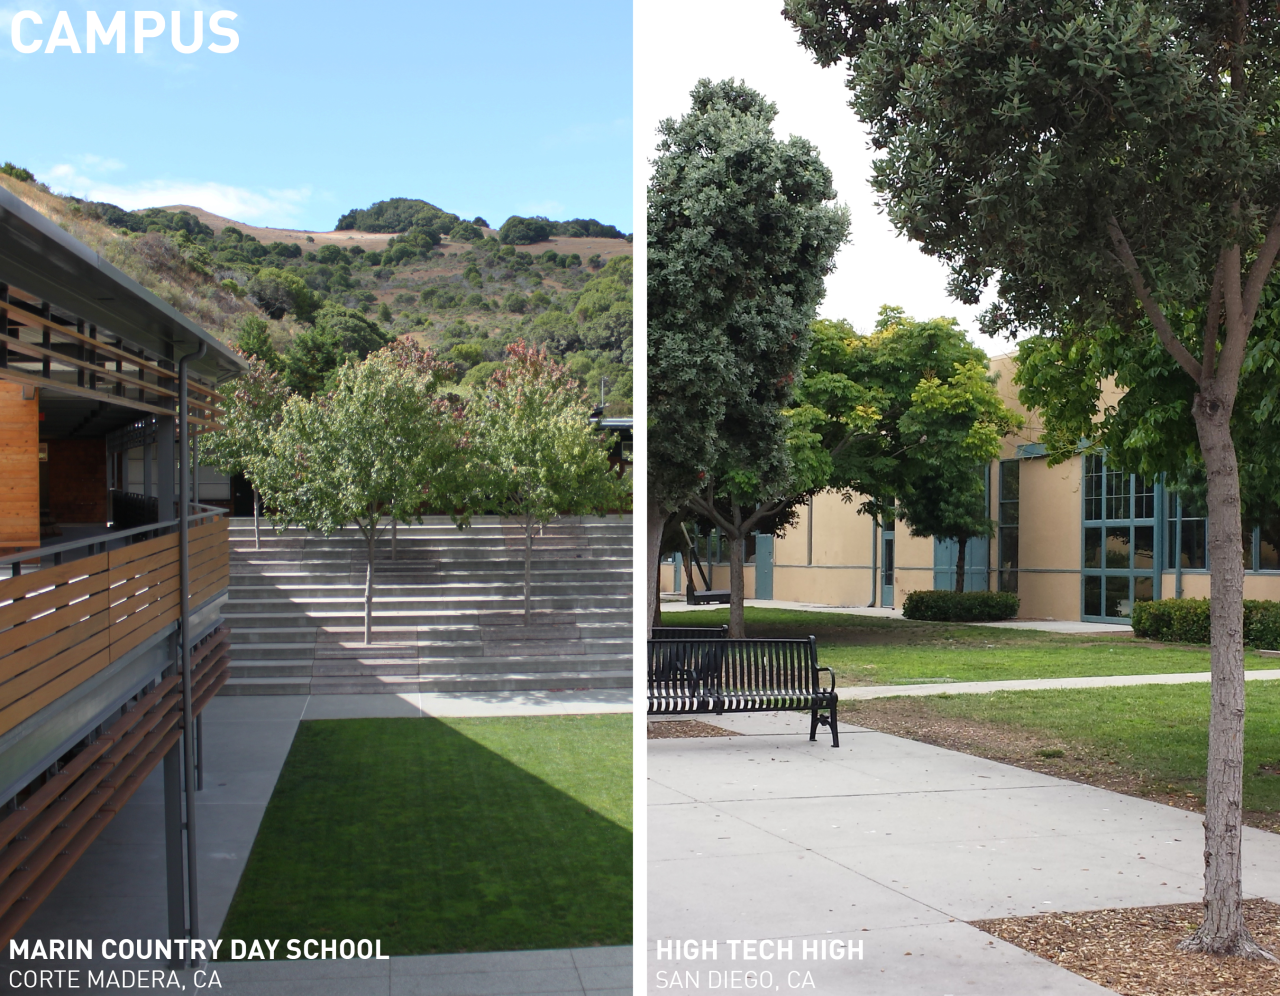 Future of Learning | Campus Context   Two successful educational environments that were toured for the Future of Learning project were Marin Country Day School and High Tech High. The two school environments were very unique, yet shared many commonalities, one being that they were both organized as a campus layout.     …to visit full article